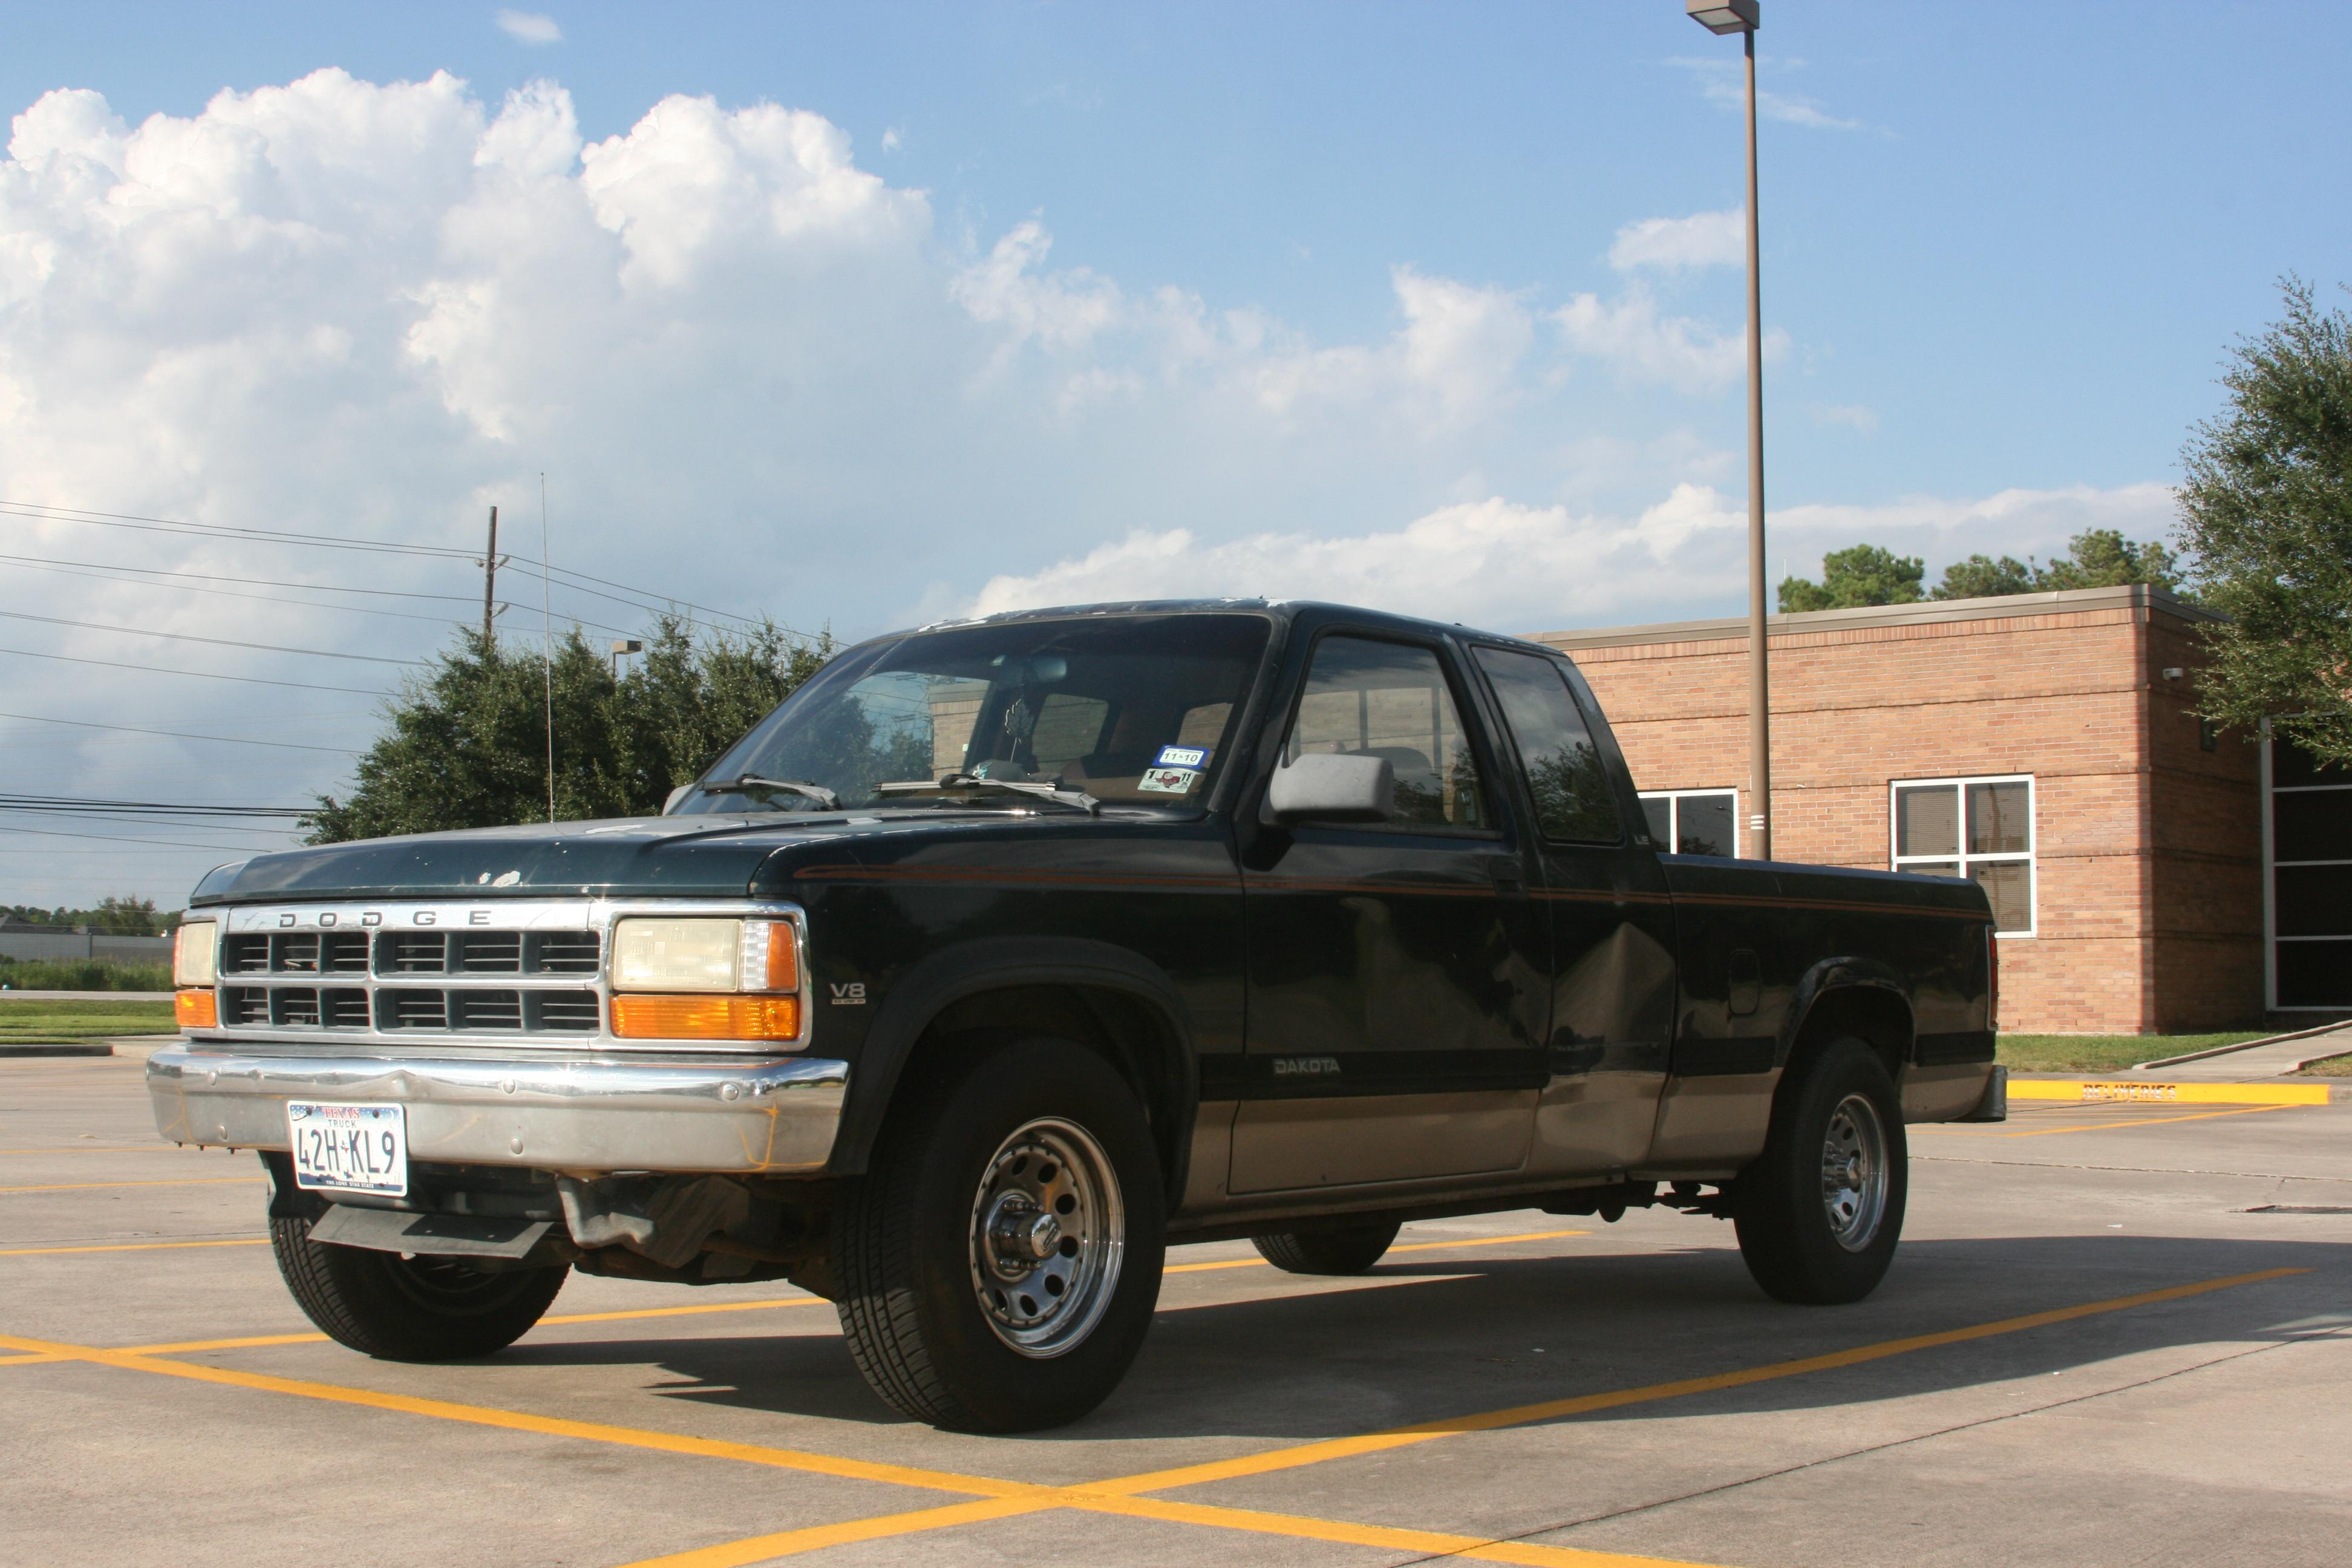 92dakotaV8's 1992 Dodge Dakota Extended Cab